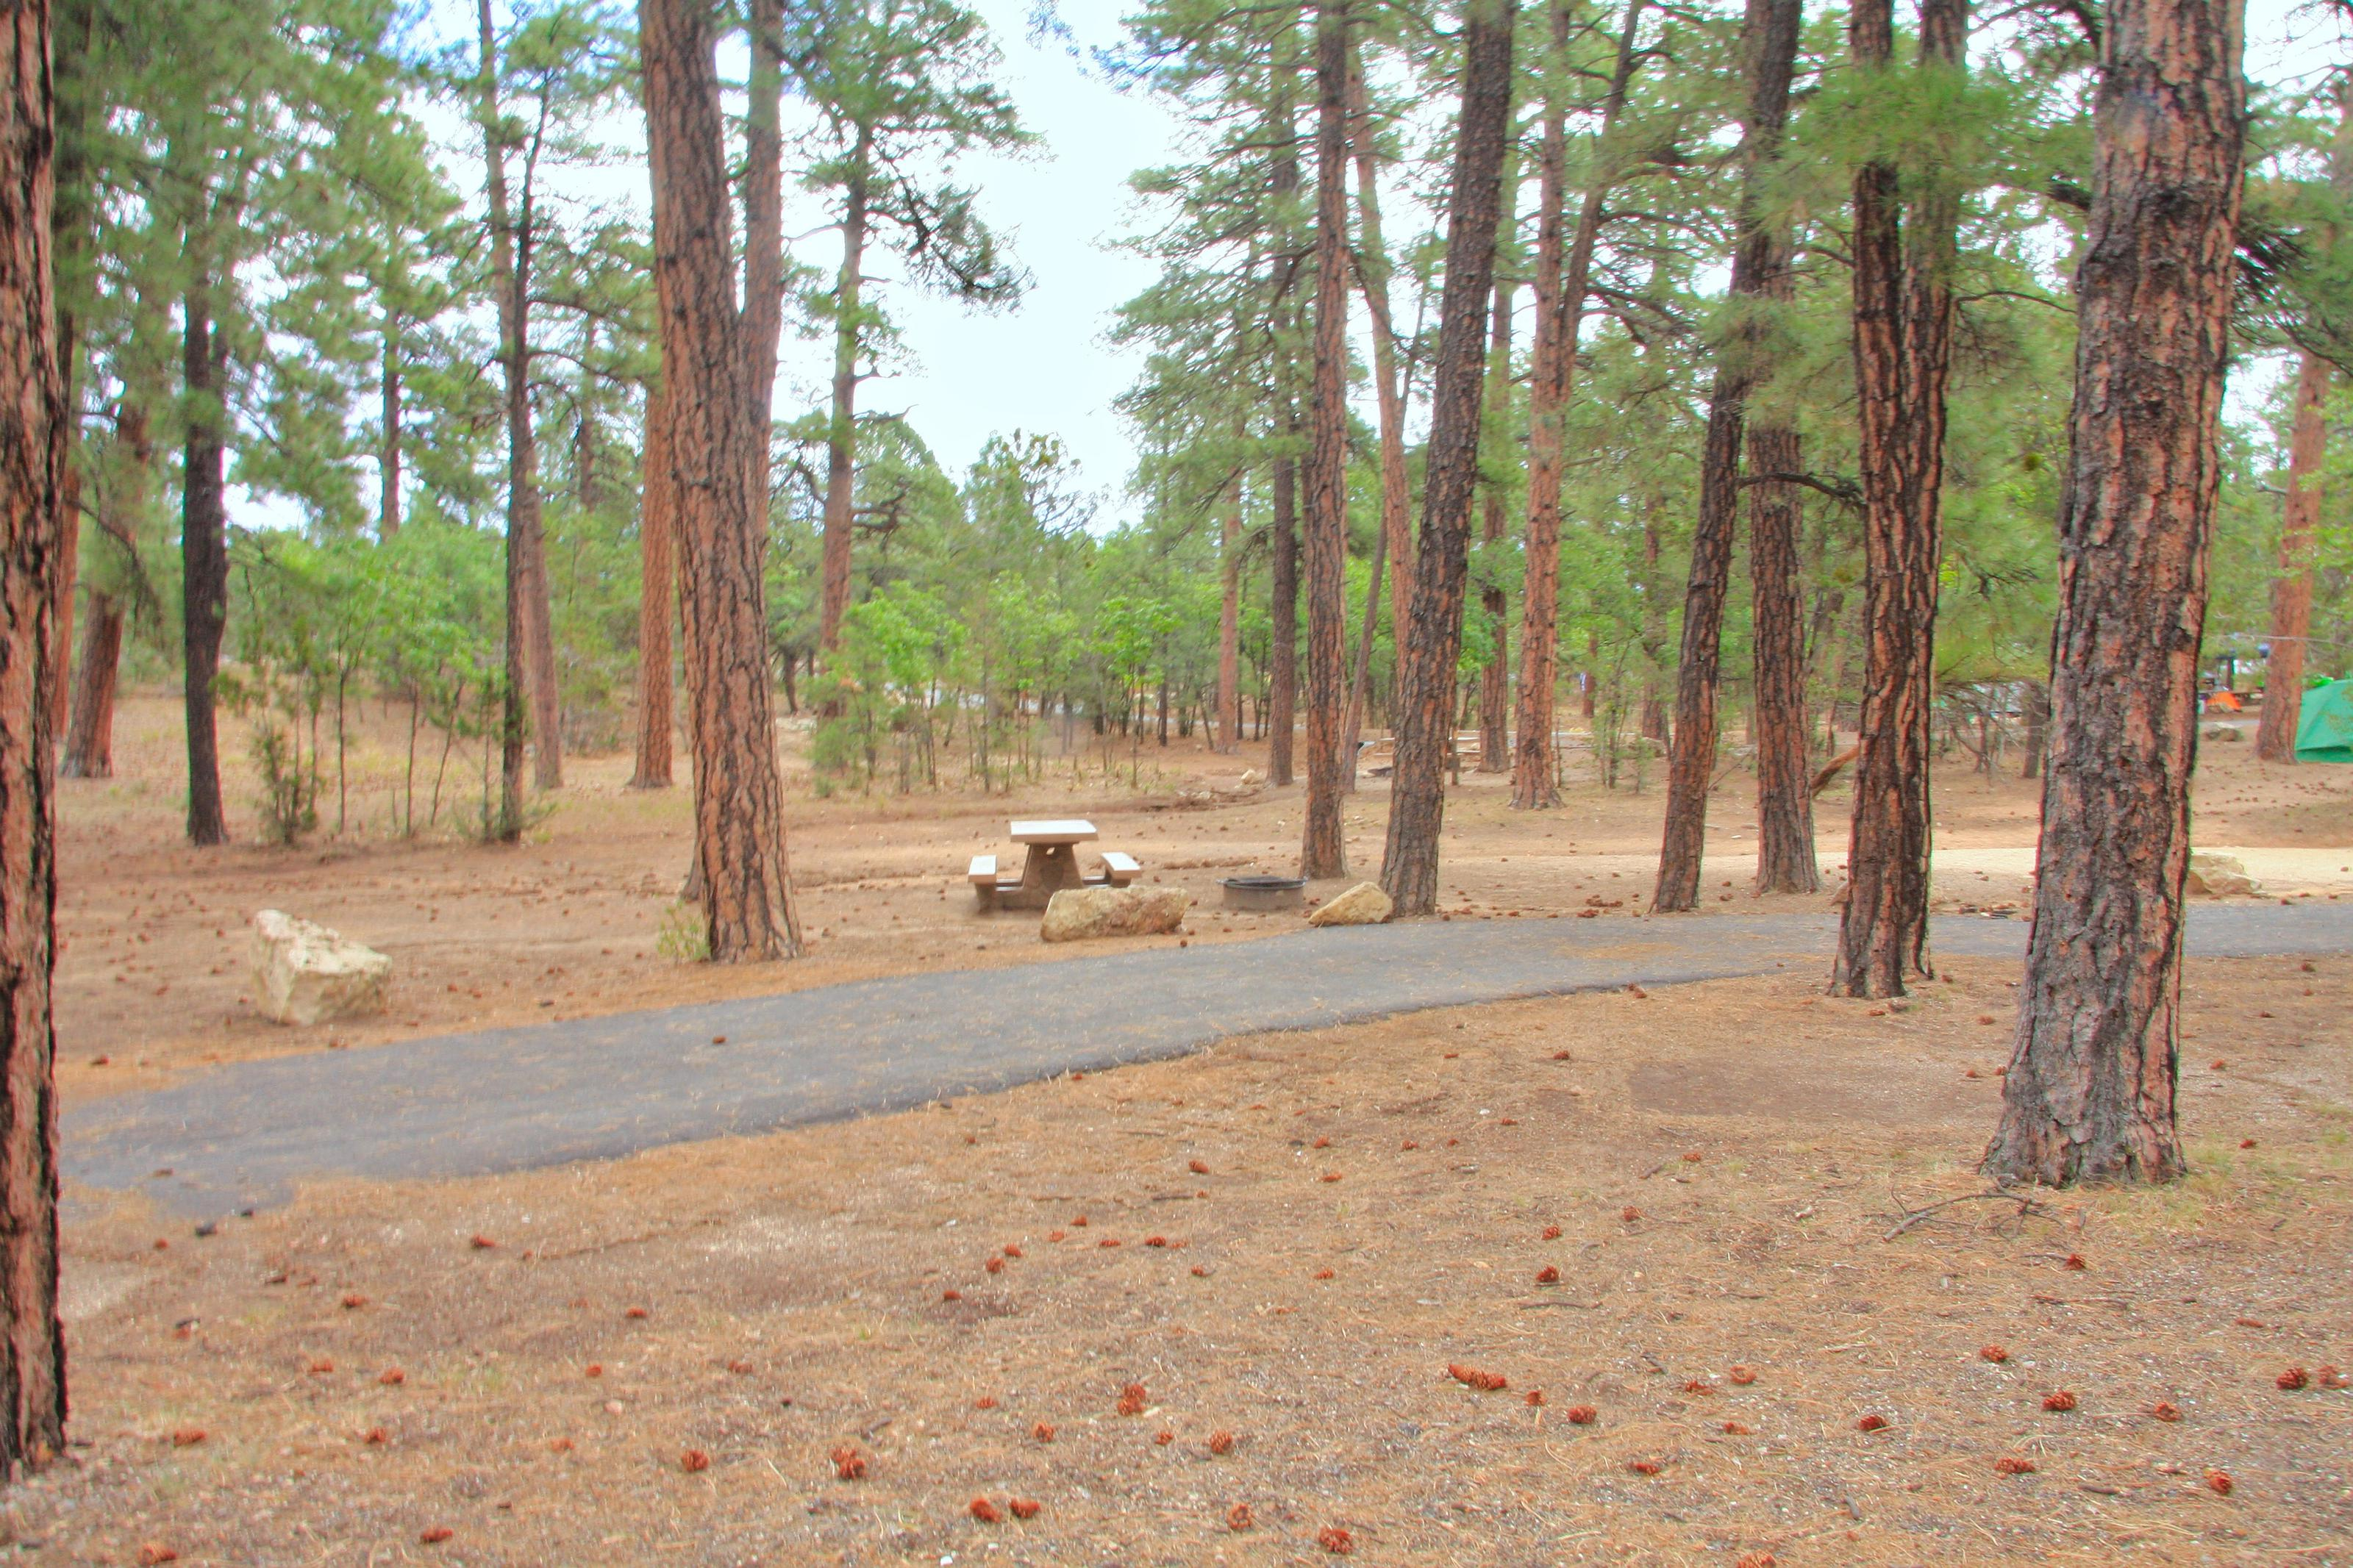 Parking spot, fire pit, and picnic table, Mather CampgroundThe parking spot, fire pit, and picnic table for Aspen Loop 4, Mather Campground